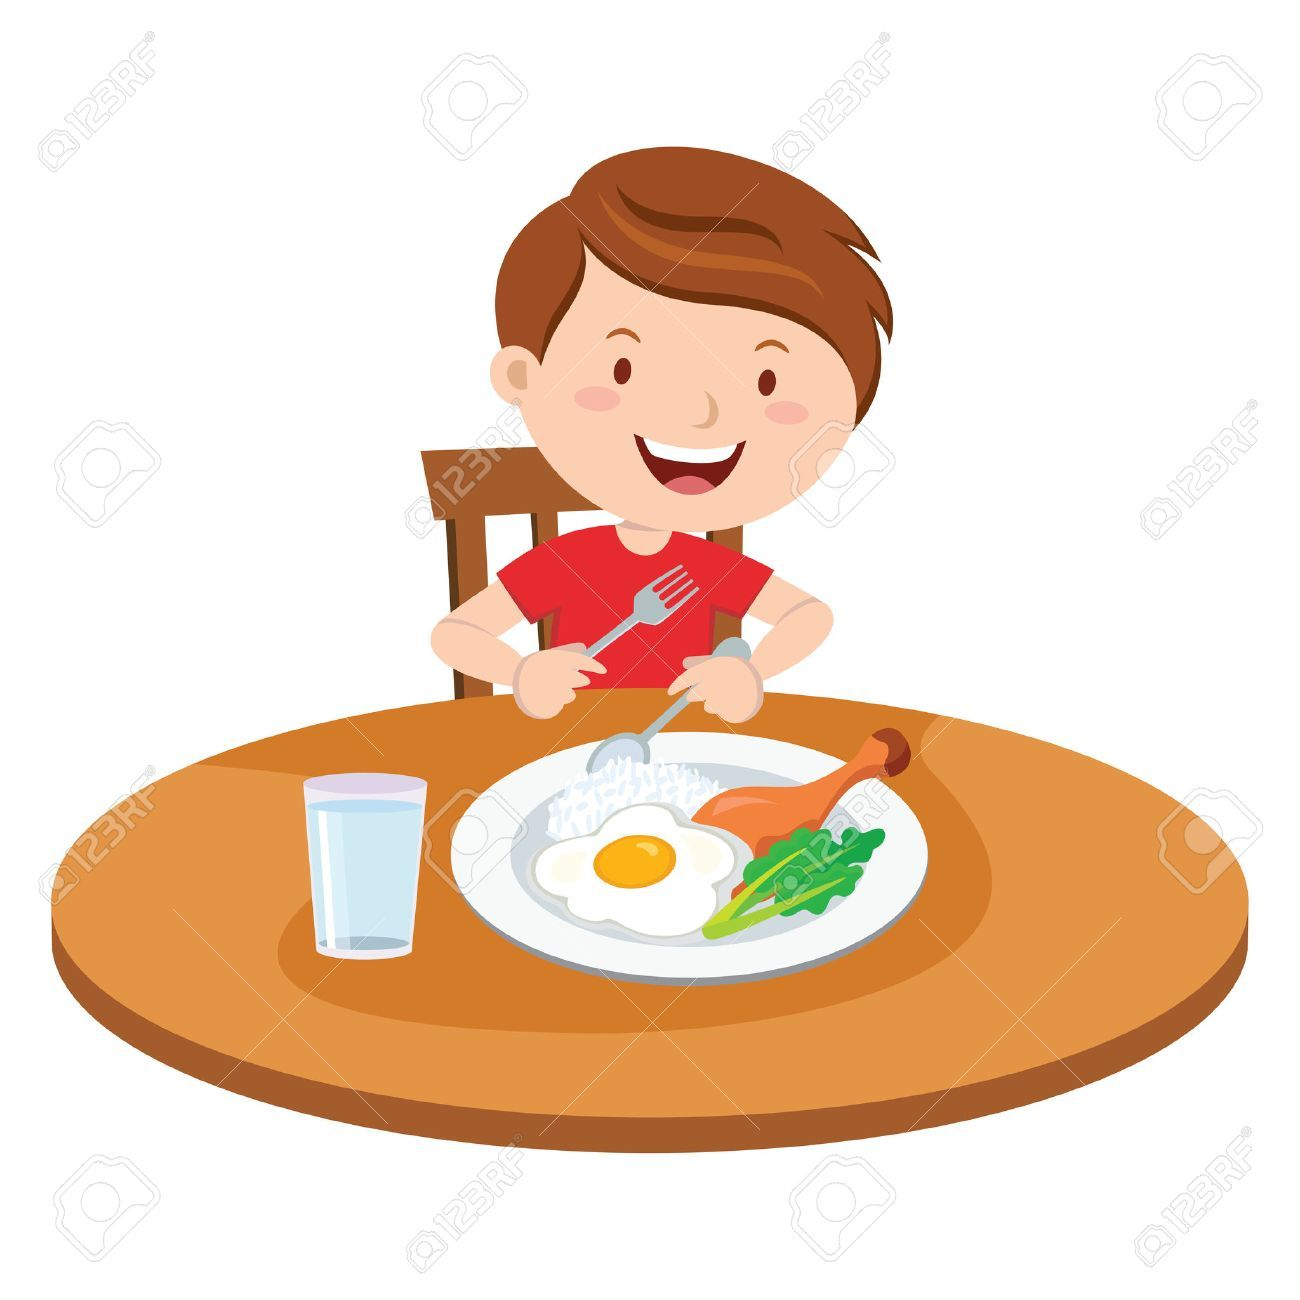 To eat breakfast clipart vector freeuse stock Boy eat breakfast clipart 4 » Clipart Portal vector freeuse stock